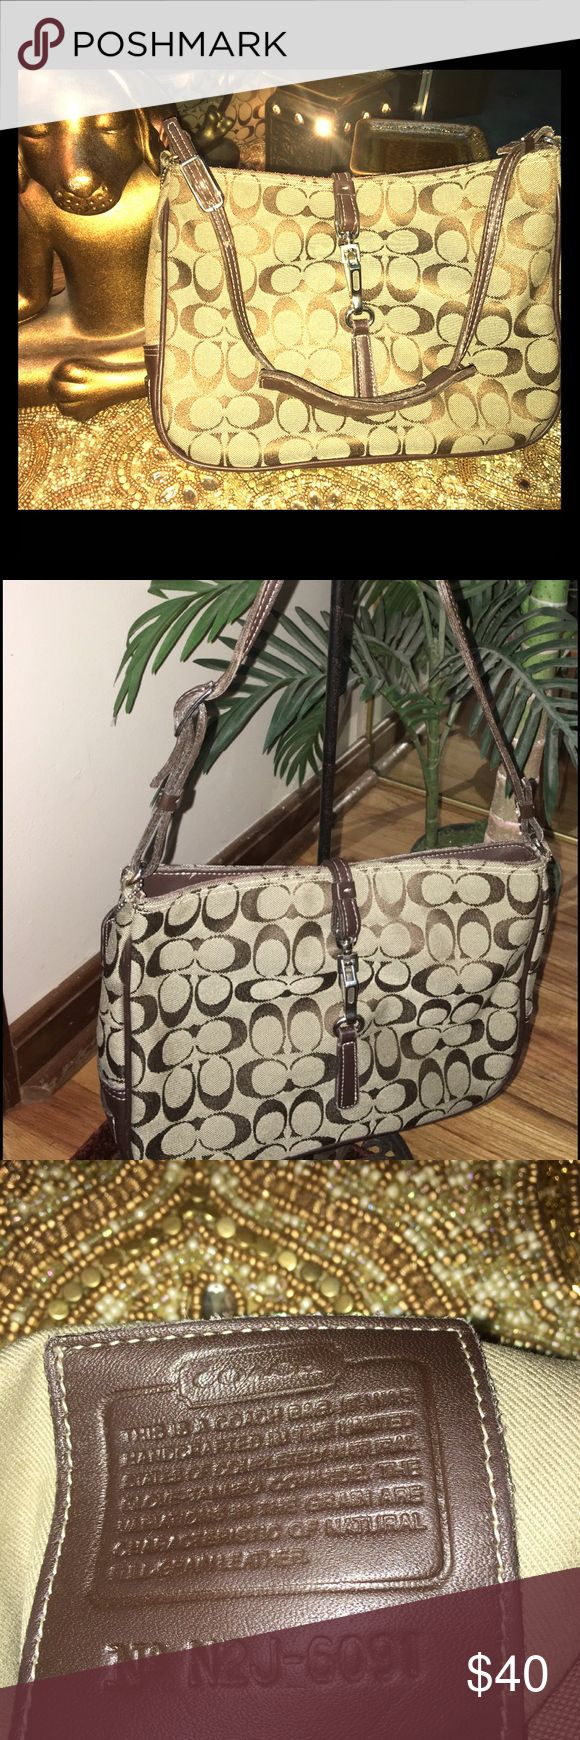 Authentic Coach Purse Brown Coach Shoulder Purse. Very clean, no stains, rips or tears. Coach Bags Shoulder Bags